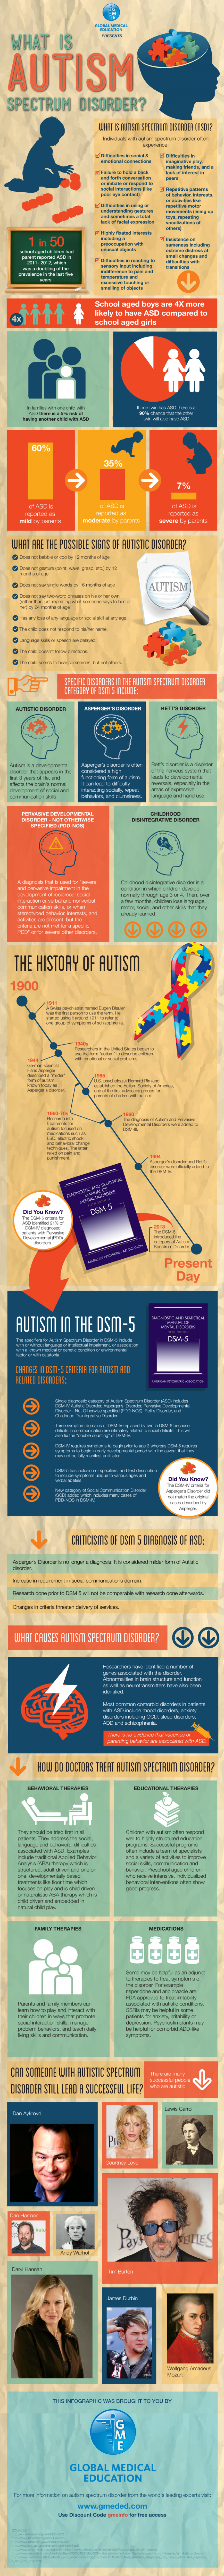 ASD 101 Beginner s Guide To Autism Spectrum Disorder Assistive